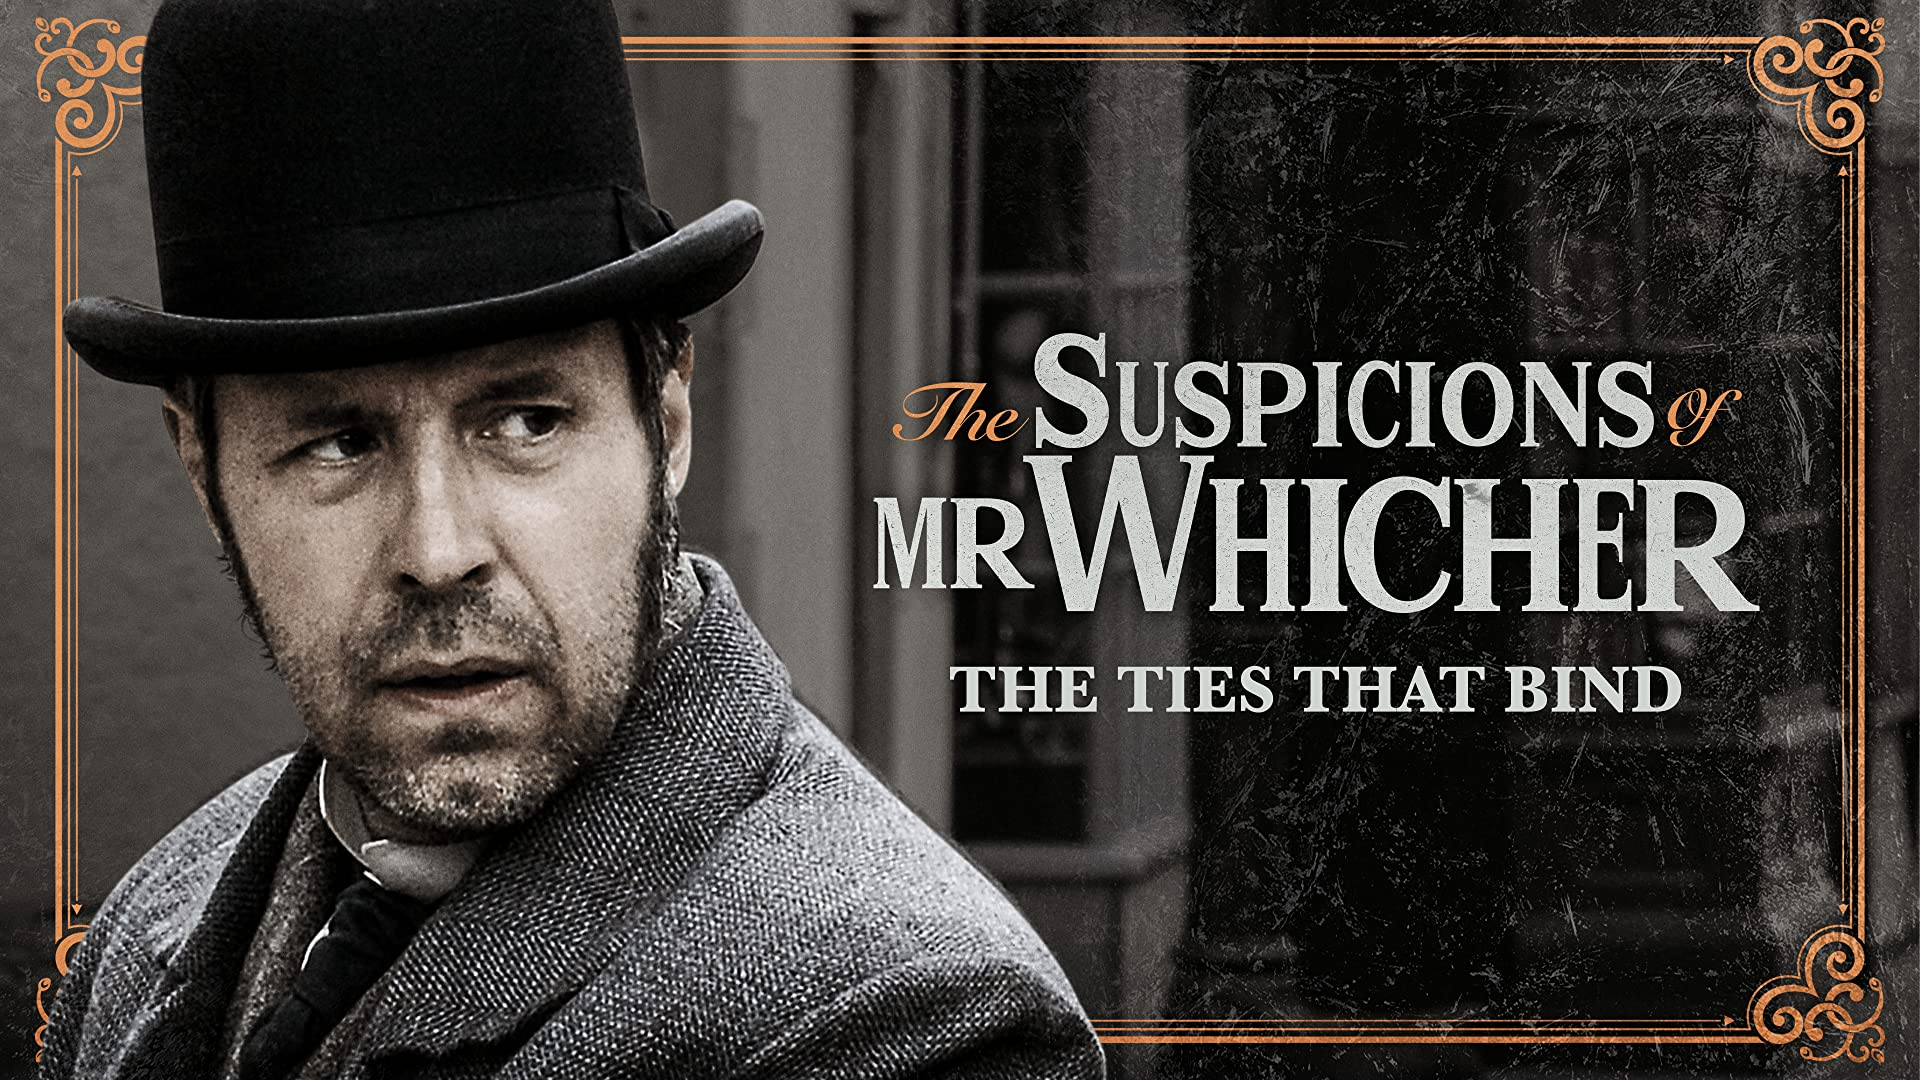 The Suspicions Of Mr. Whicher: The Ties That Bind